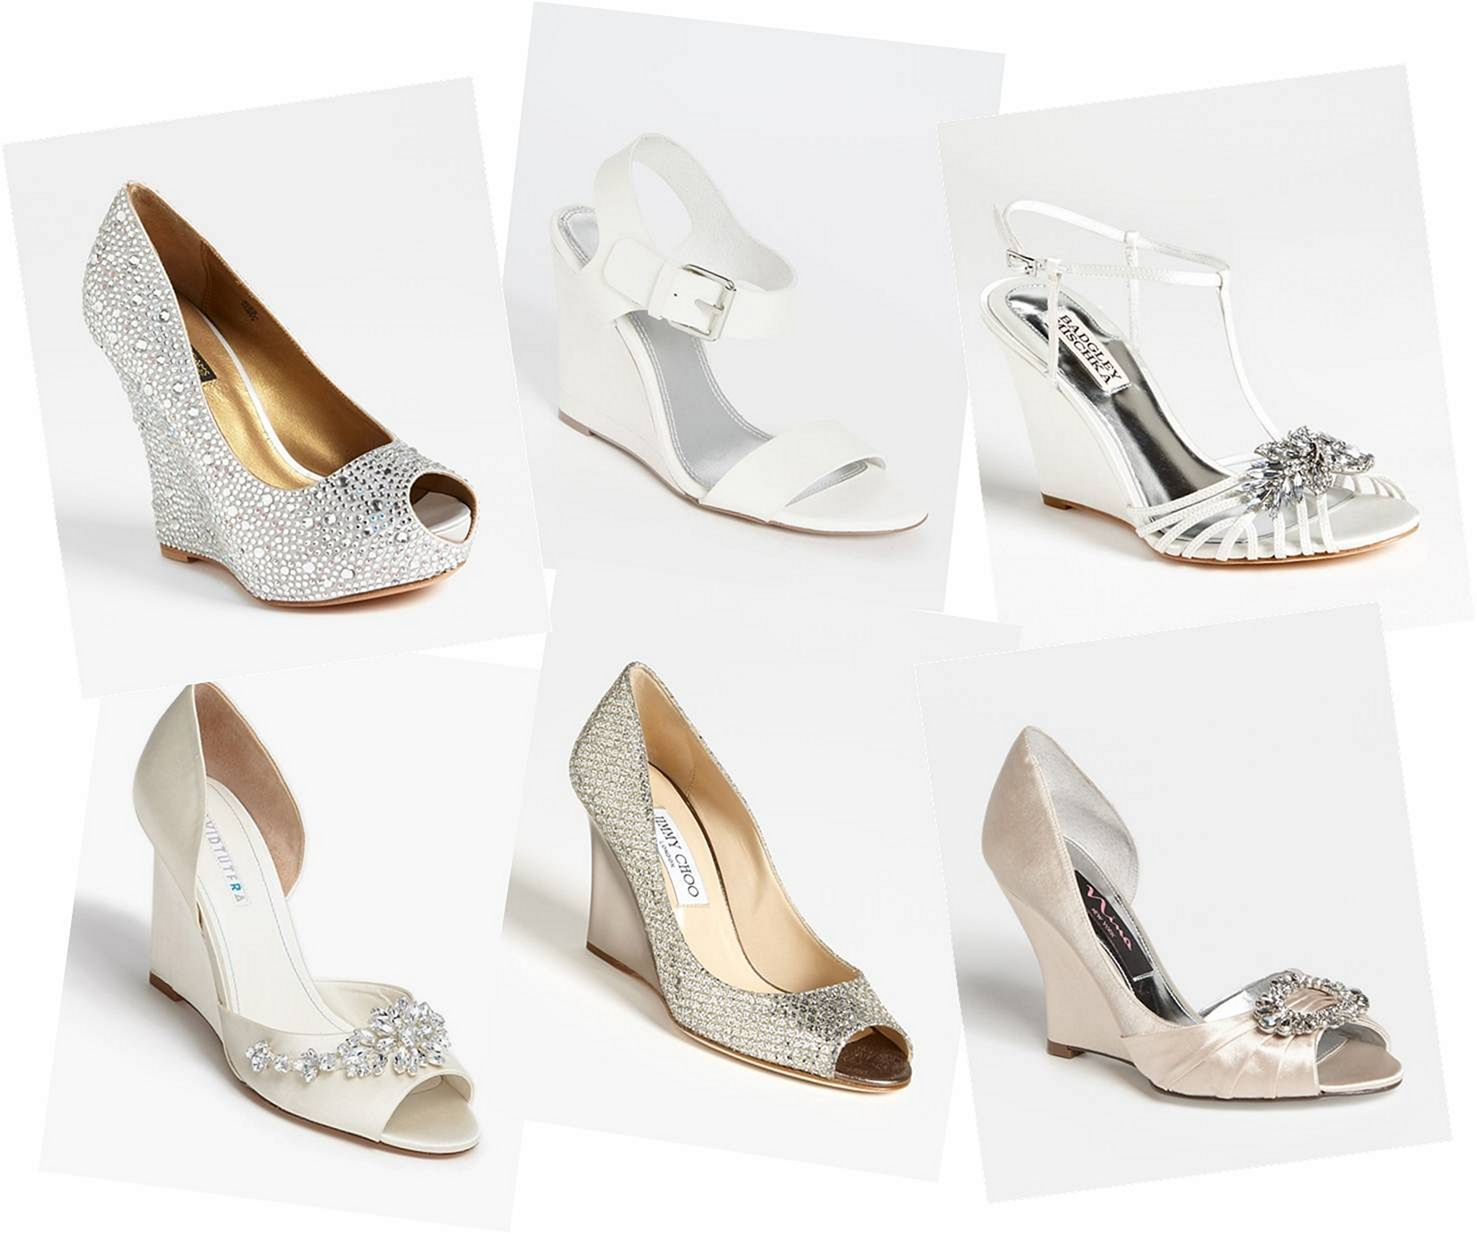 22 Awesome Wedge Heel Wedding Shoes Design Ideas You Need To Try Wedding Shoes Heels Nordstrom Heels Wedge Wedding Shoes